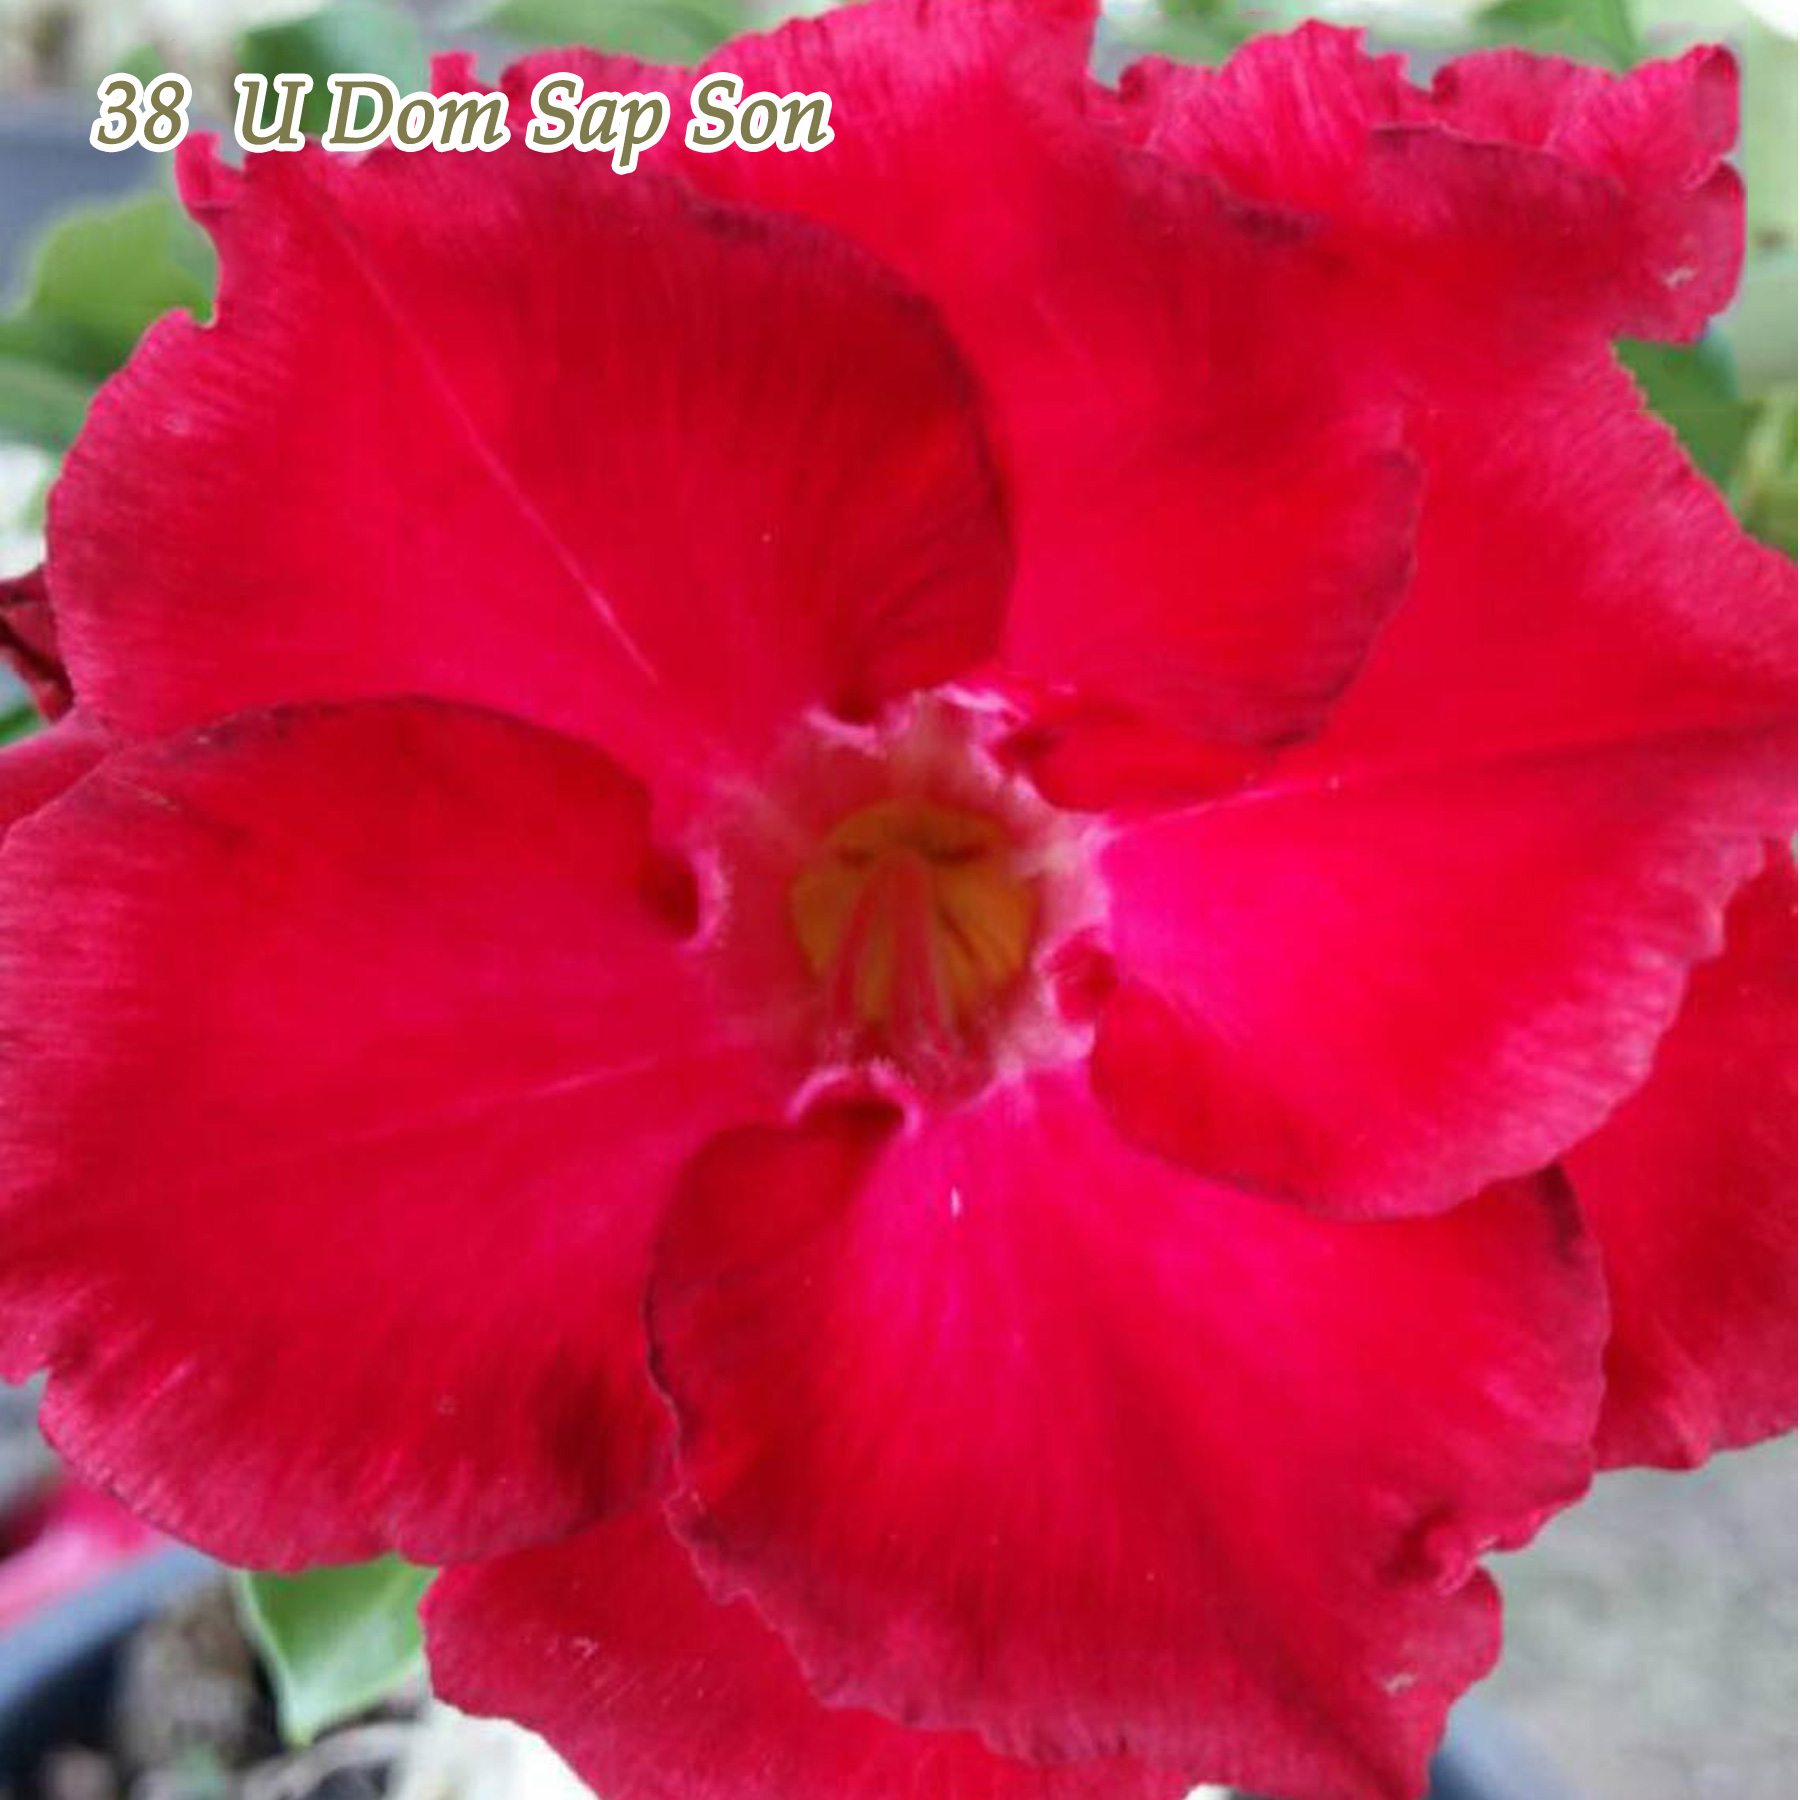 Desert Rose Plant Adenium obesum Mature Bonsai New Hybrids Easy Care by